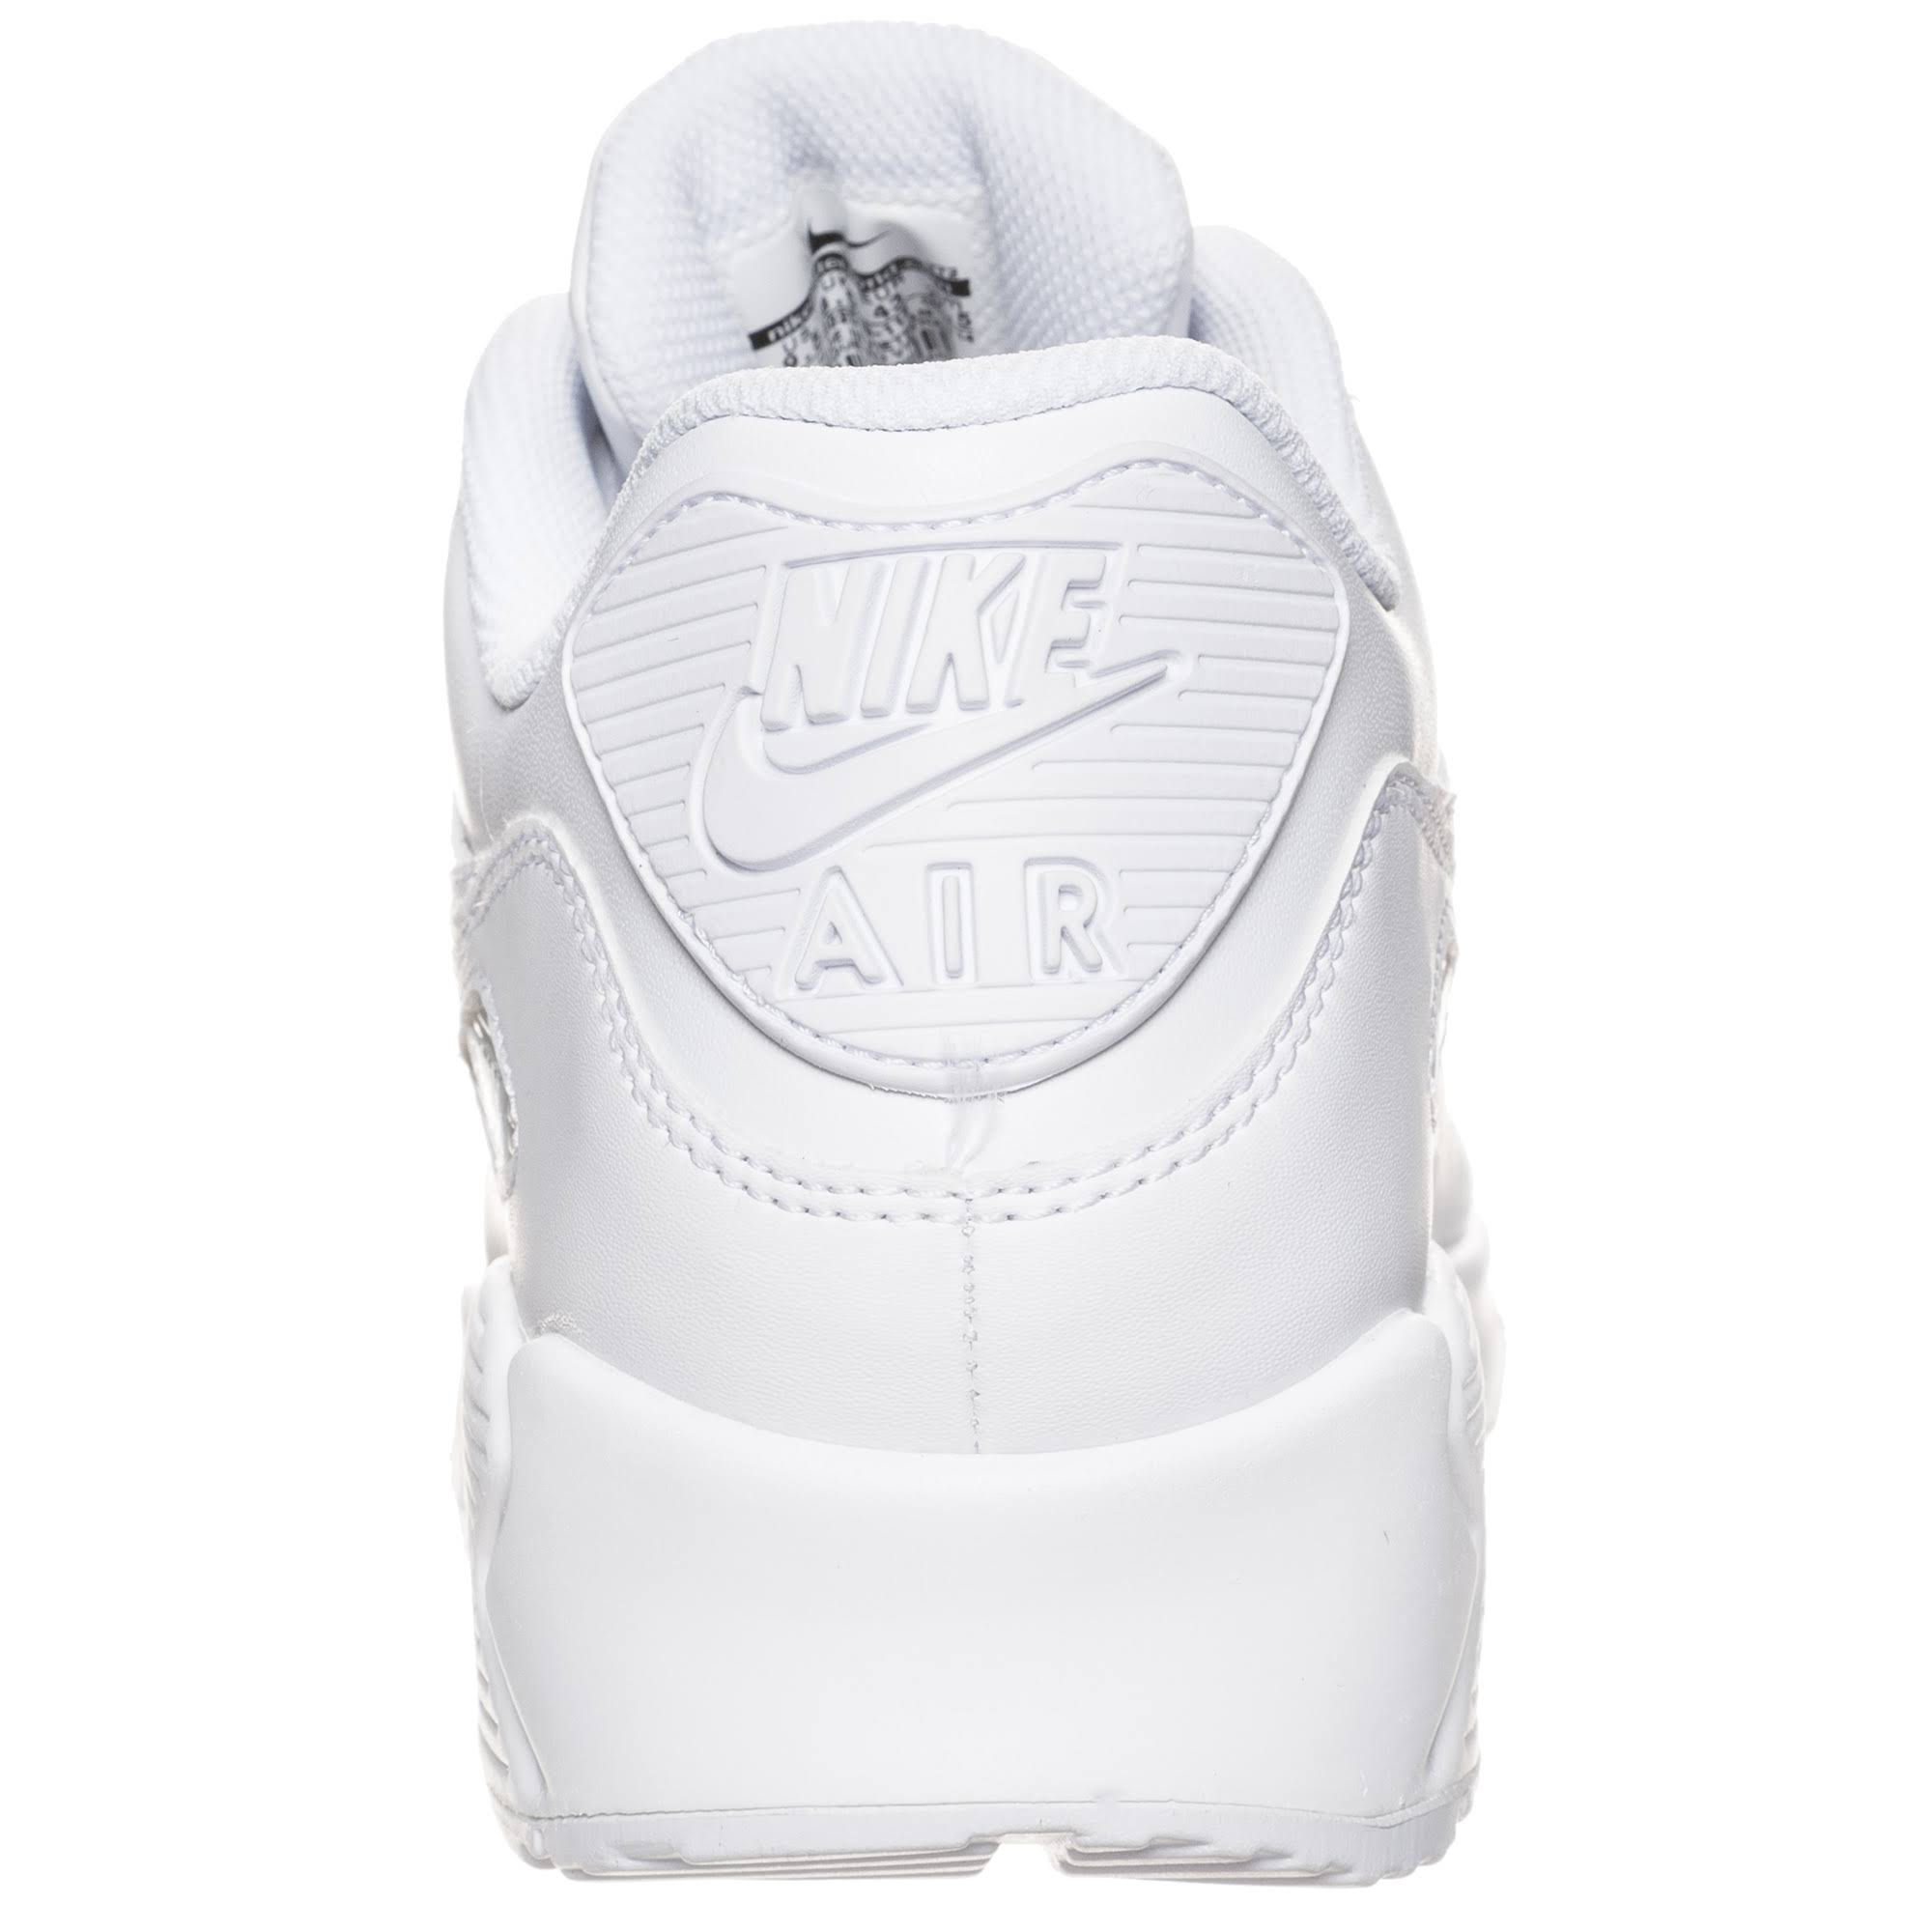 Herren 90 Gr Air 5 Nike Leather white White Max 42 white Weiß xnww7fqB